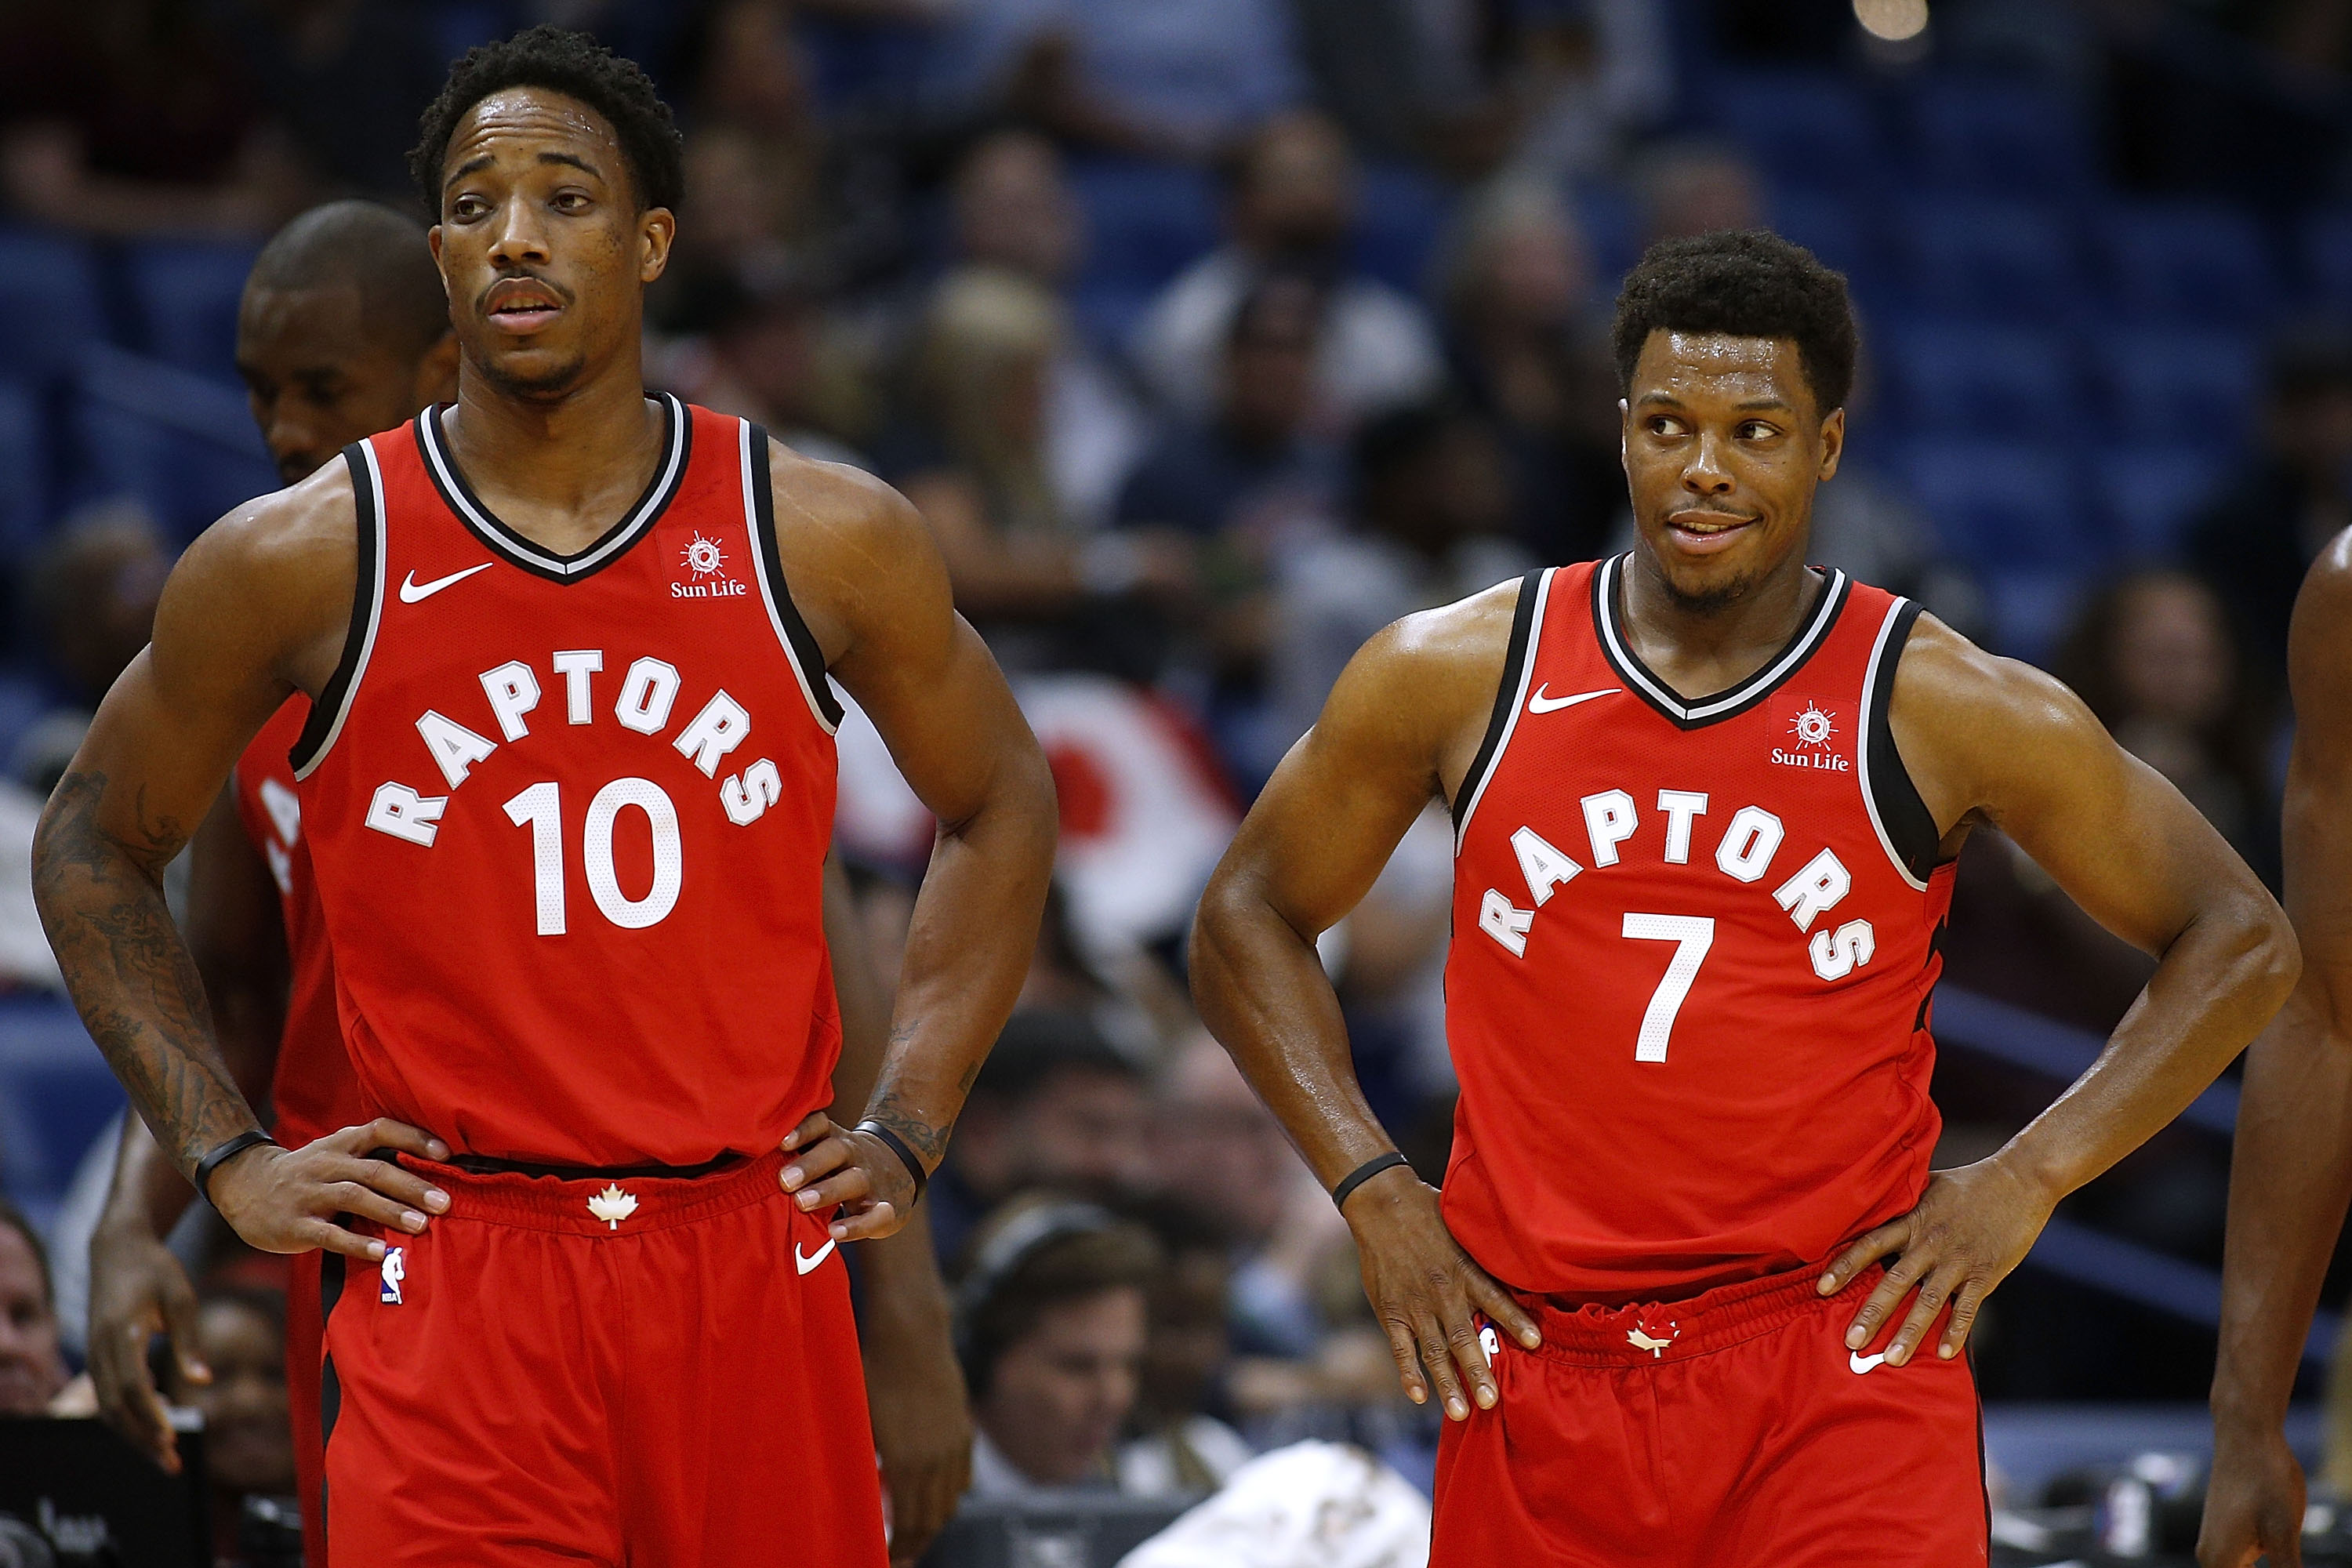 Espn Picks Their All Time Starting Five For The Toronto Raptors